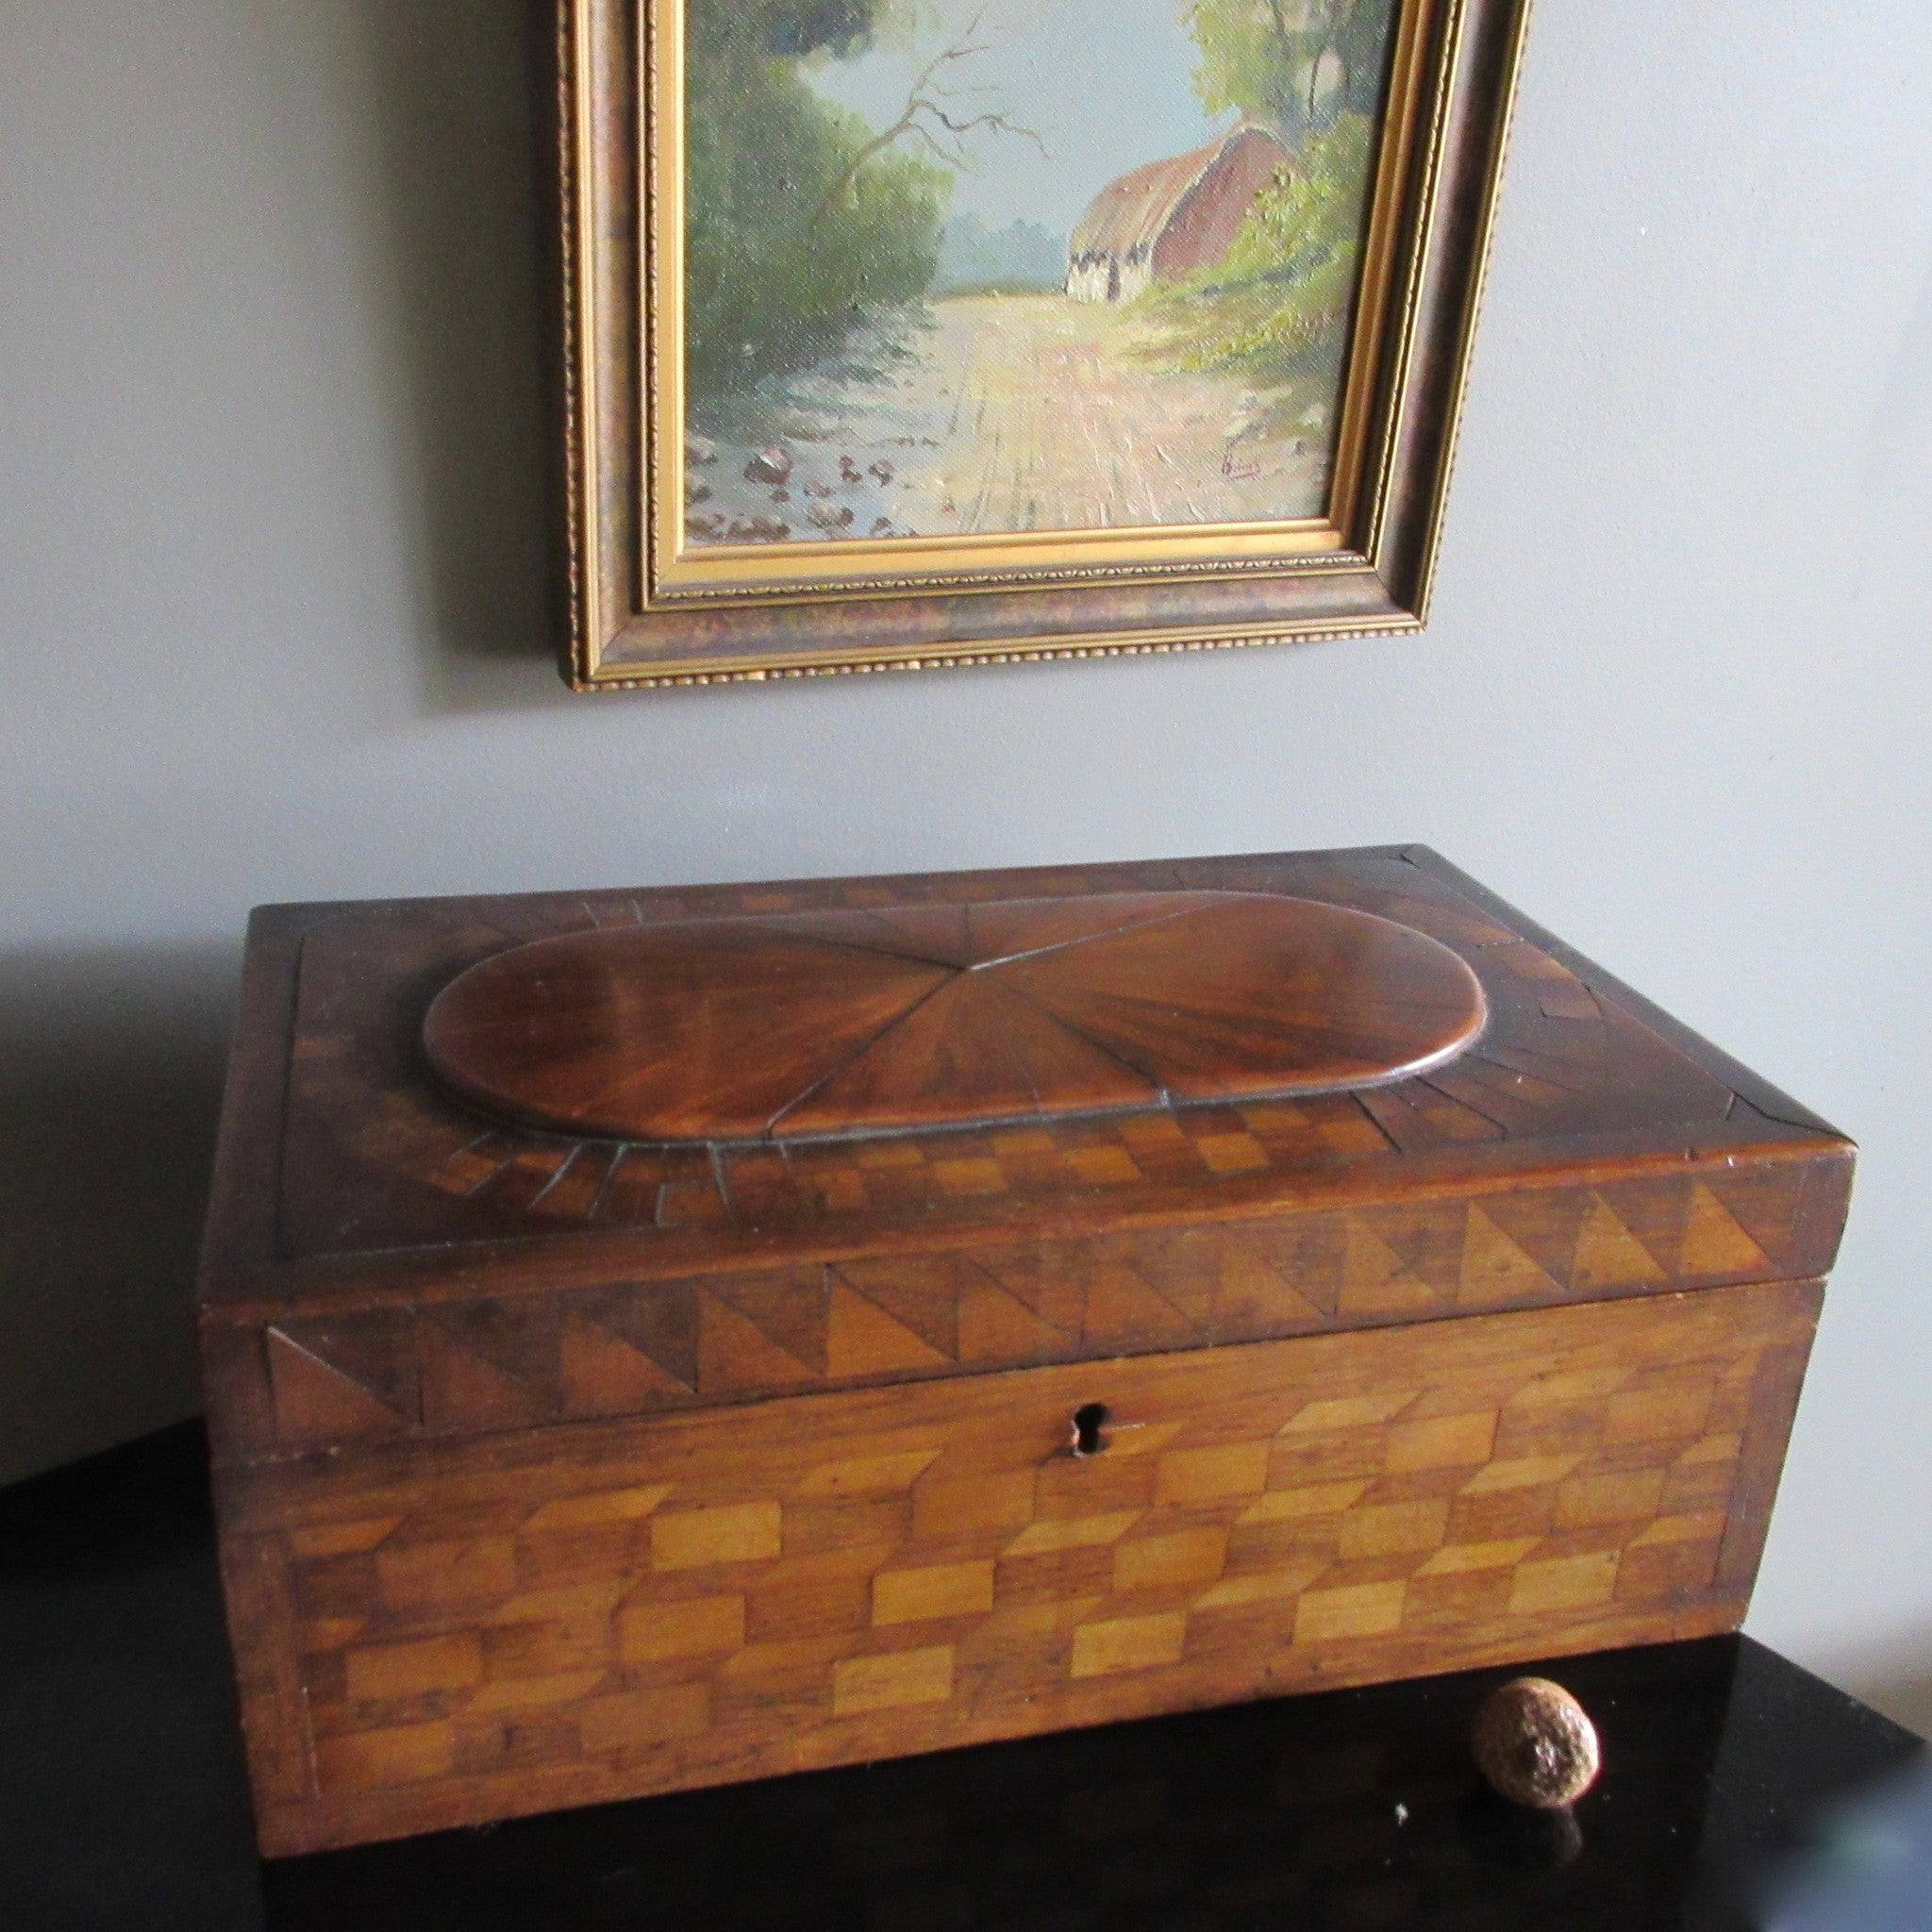 19th Century Inlaid Marquetry Wooden Box